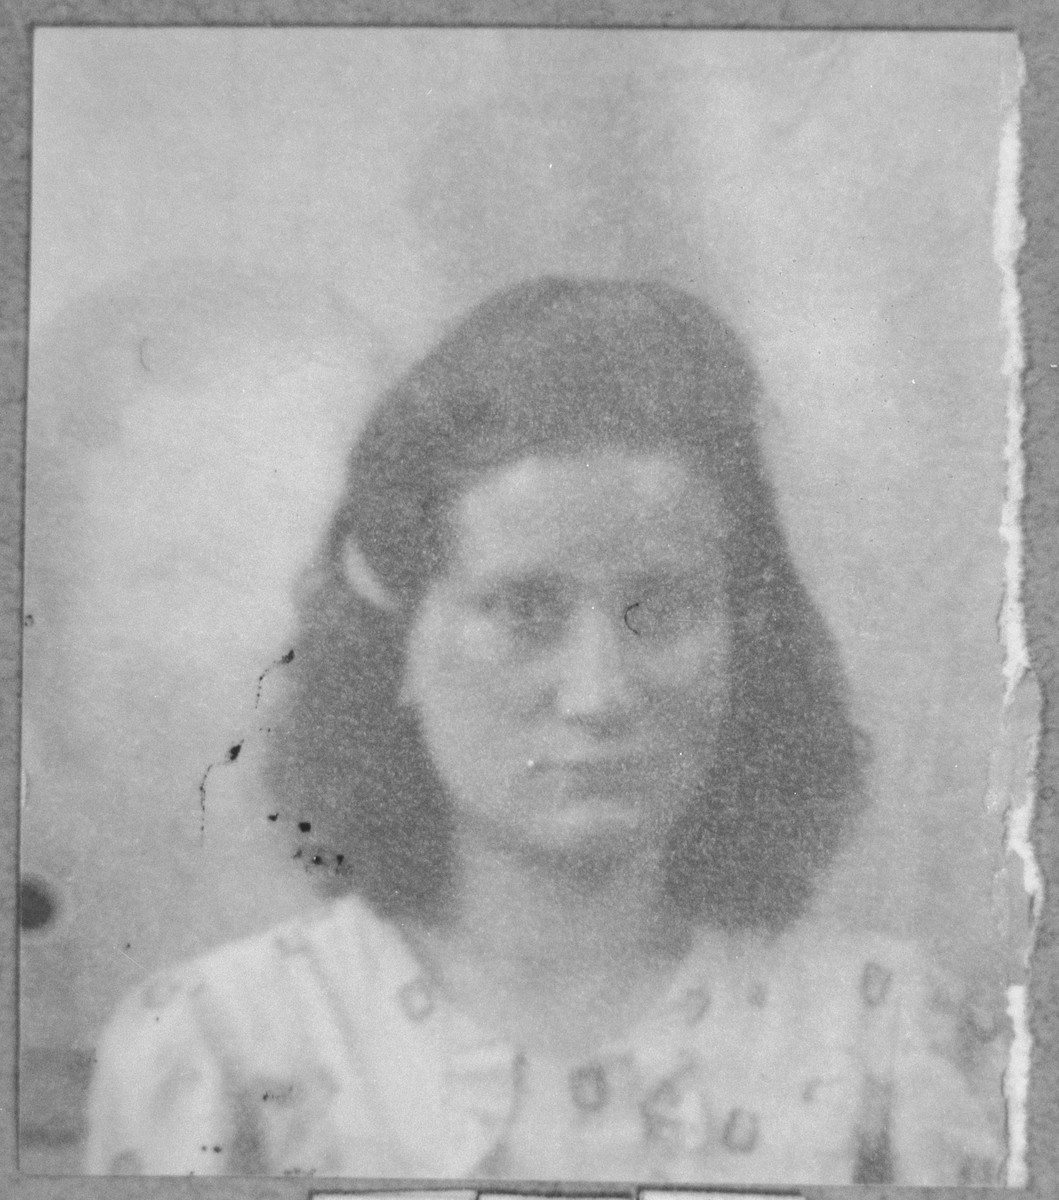 Portrait of Oro Pesso, daughter of Menachem Pesso.  She lived at Debarska 13 in Bitola.